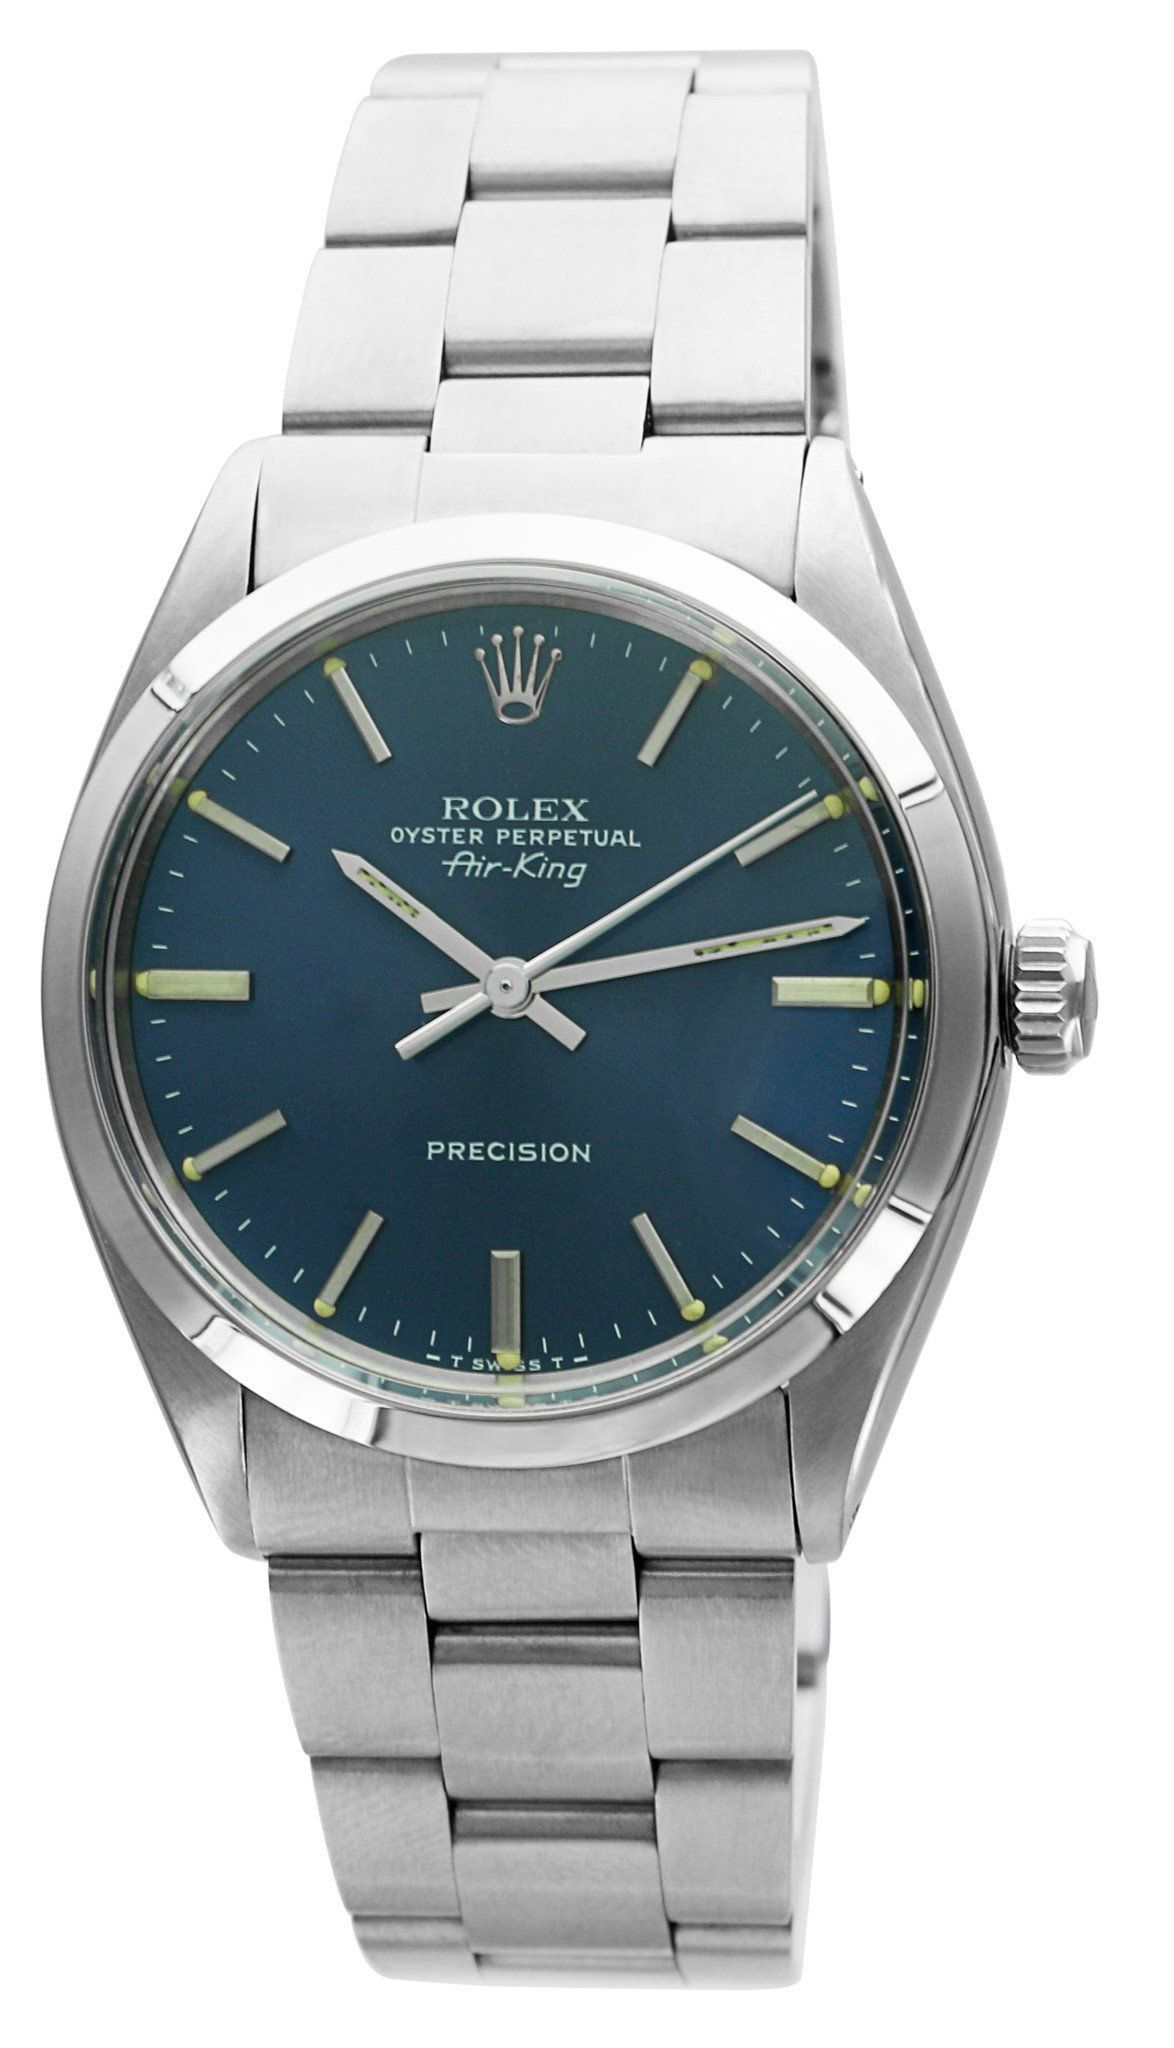 Rolex Stainless Steel AirKing with Blue Dial Circa 1980